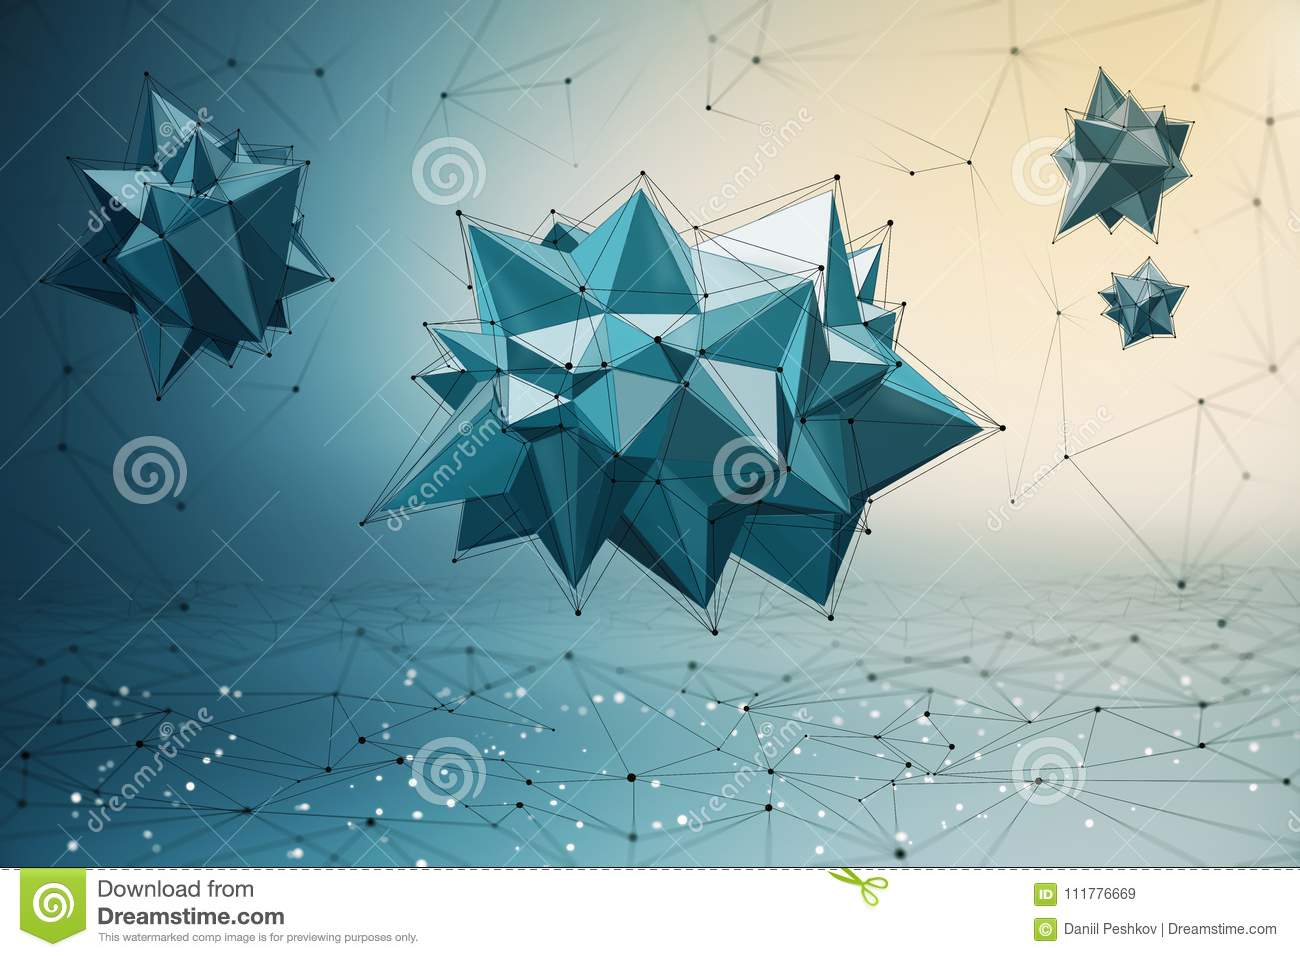 Polyonal figure background